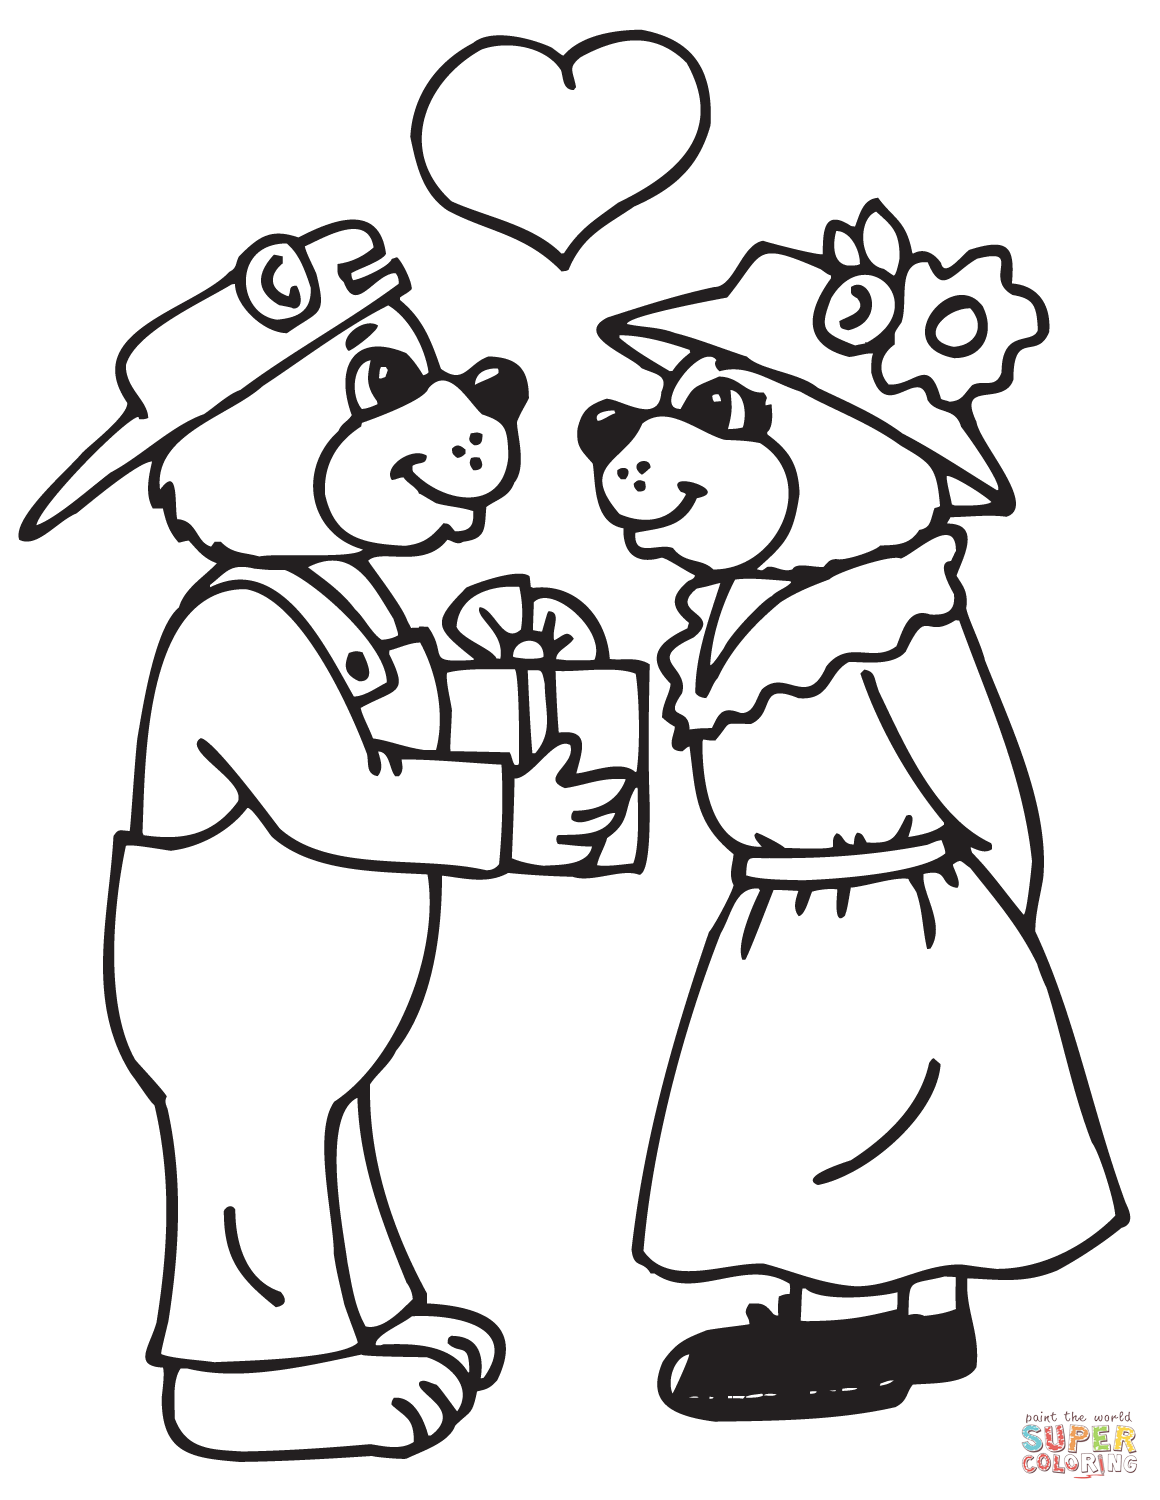 Bears Couple Coloring Page